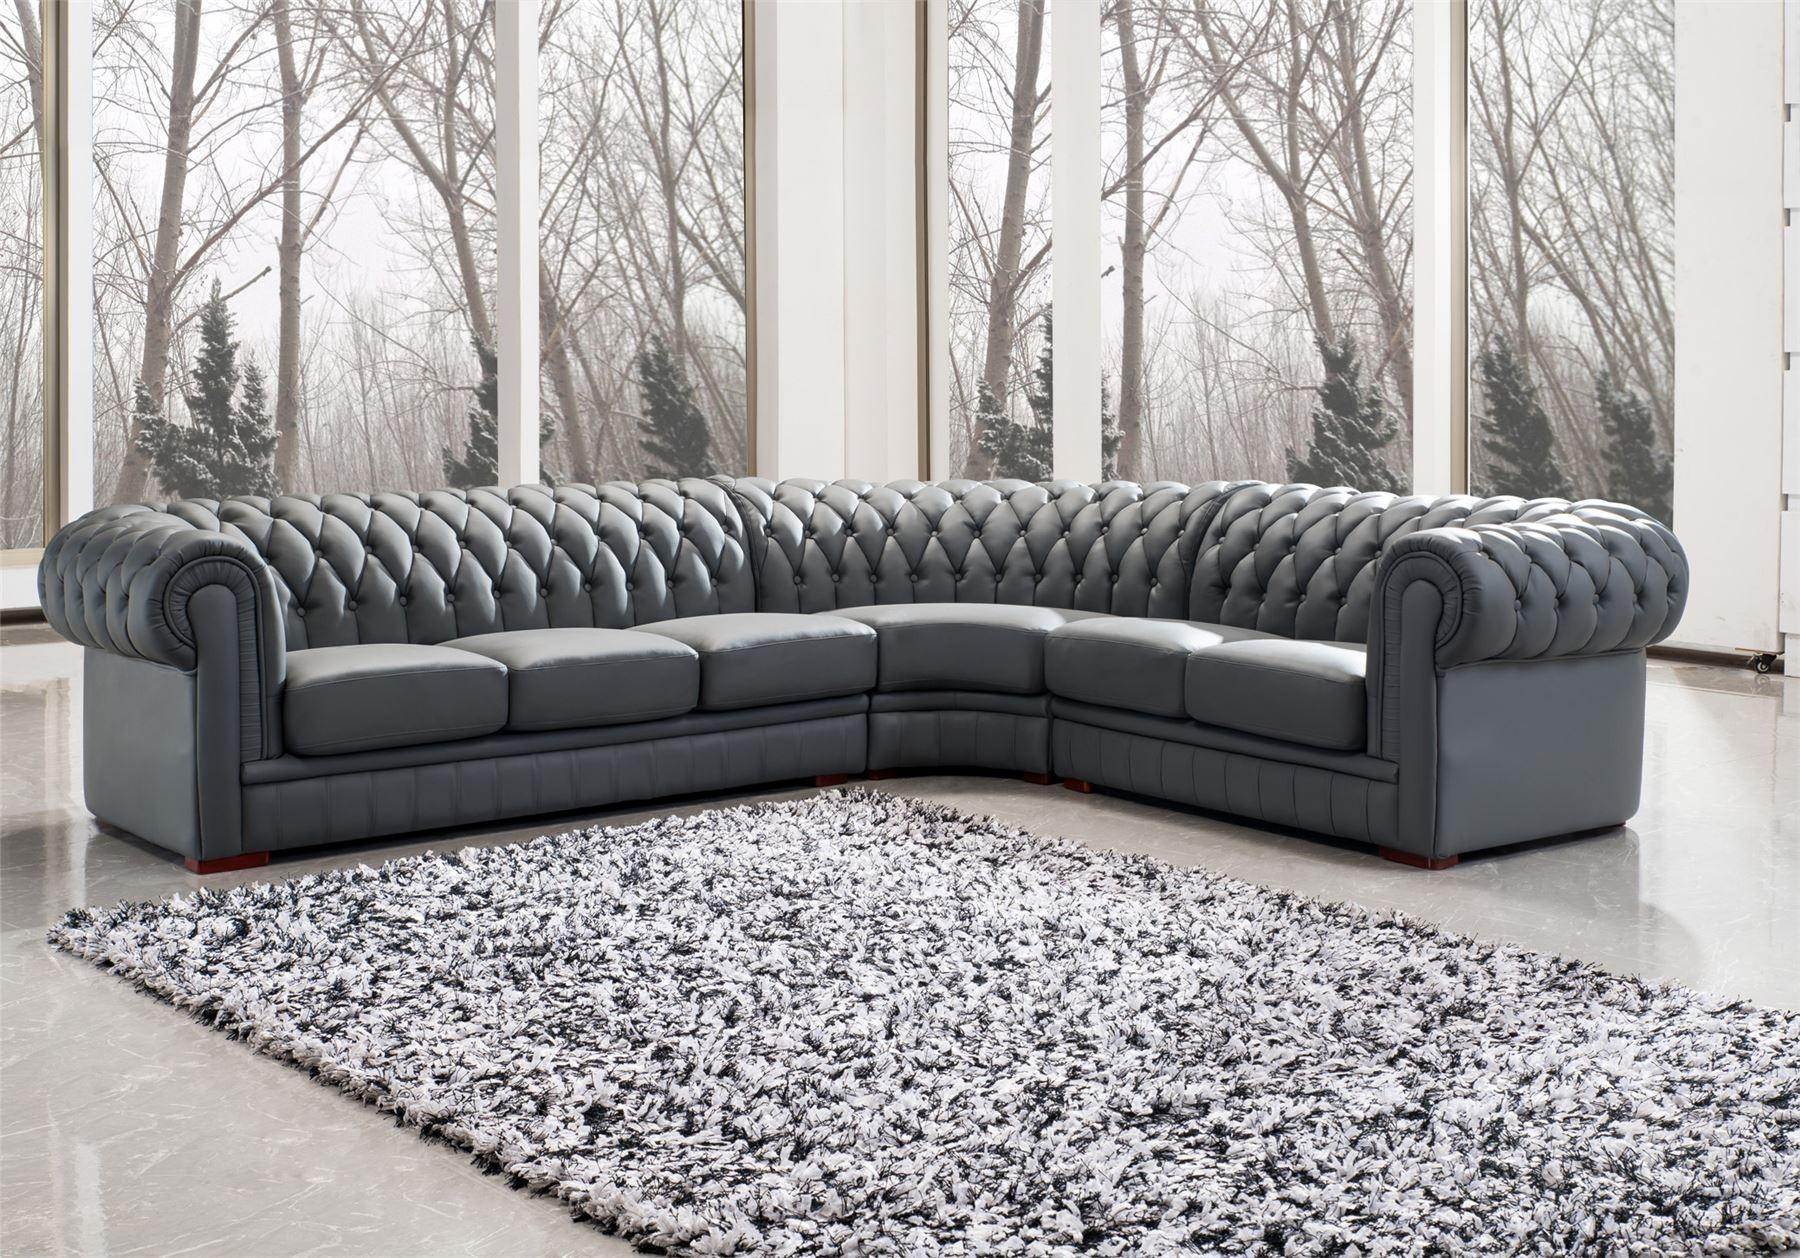 75 The Best L Shaped Sleeper Sofa Ikea | Sofa Sofa | Tehranmix With Leather Sectional San Diego (Image 3 of 20)